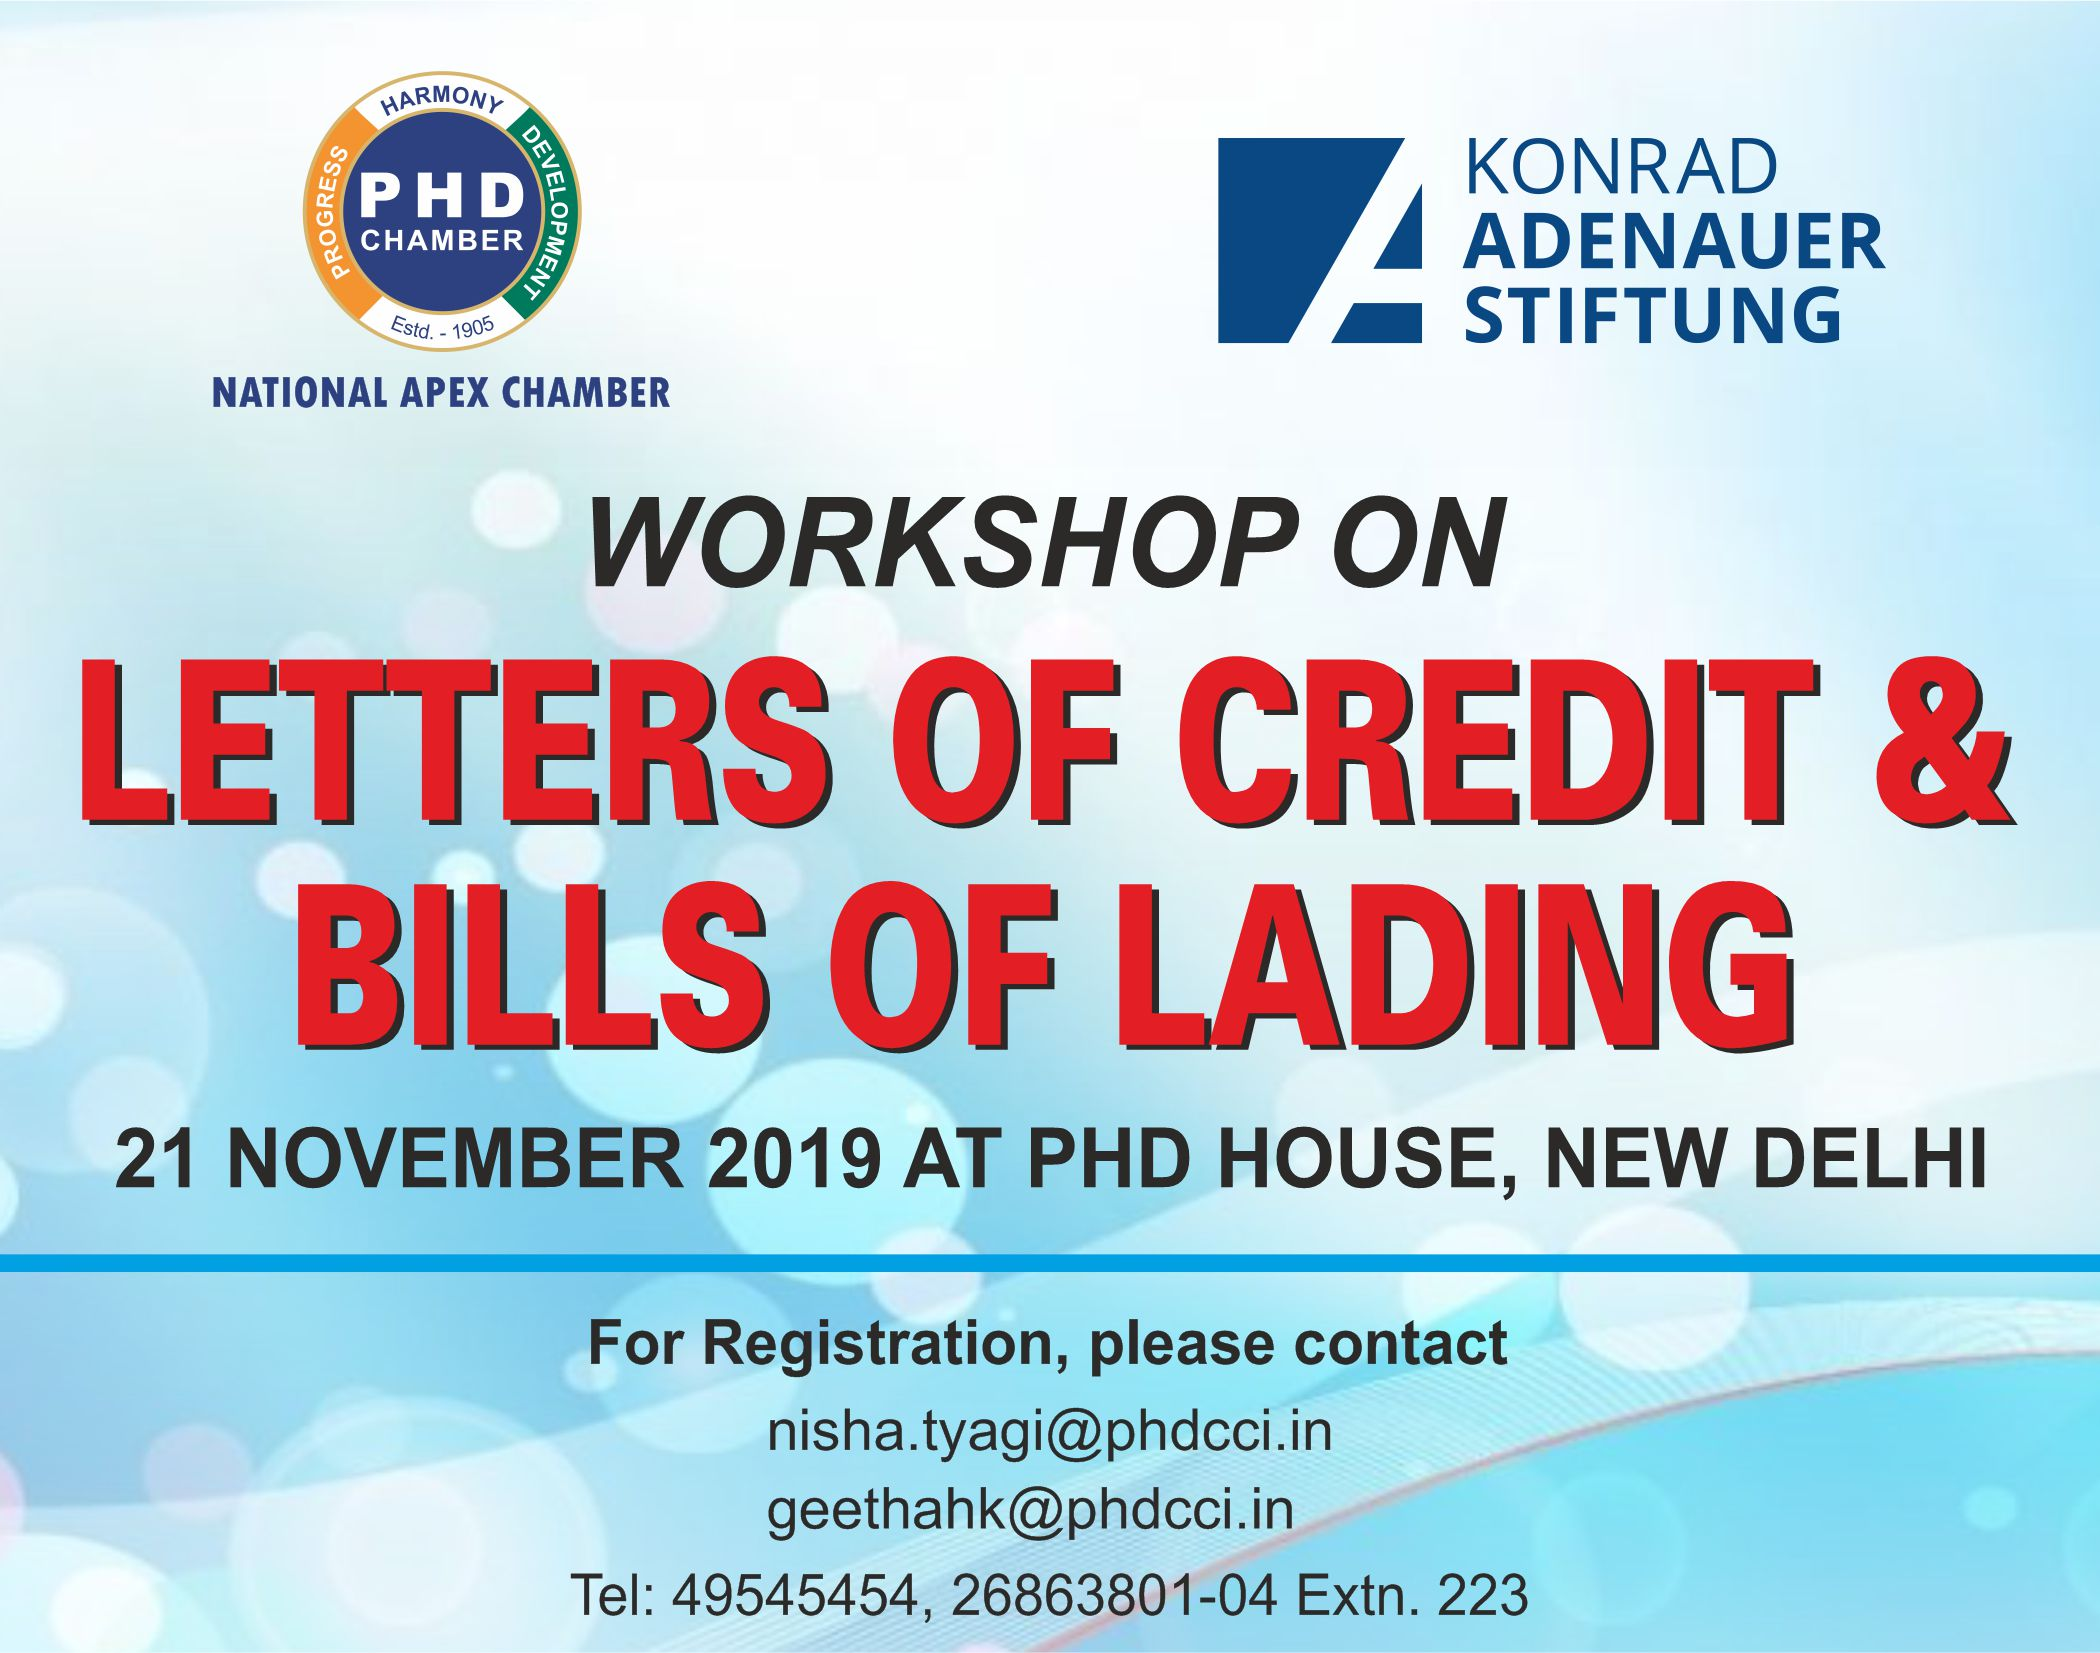 Letters of Credit & Bills of Lading